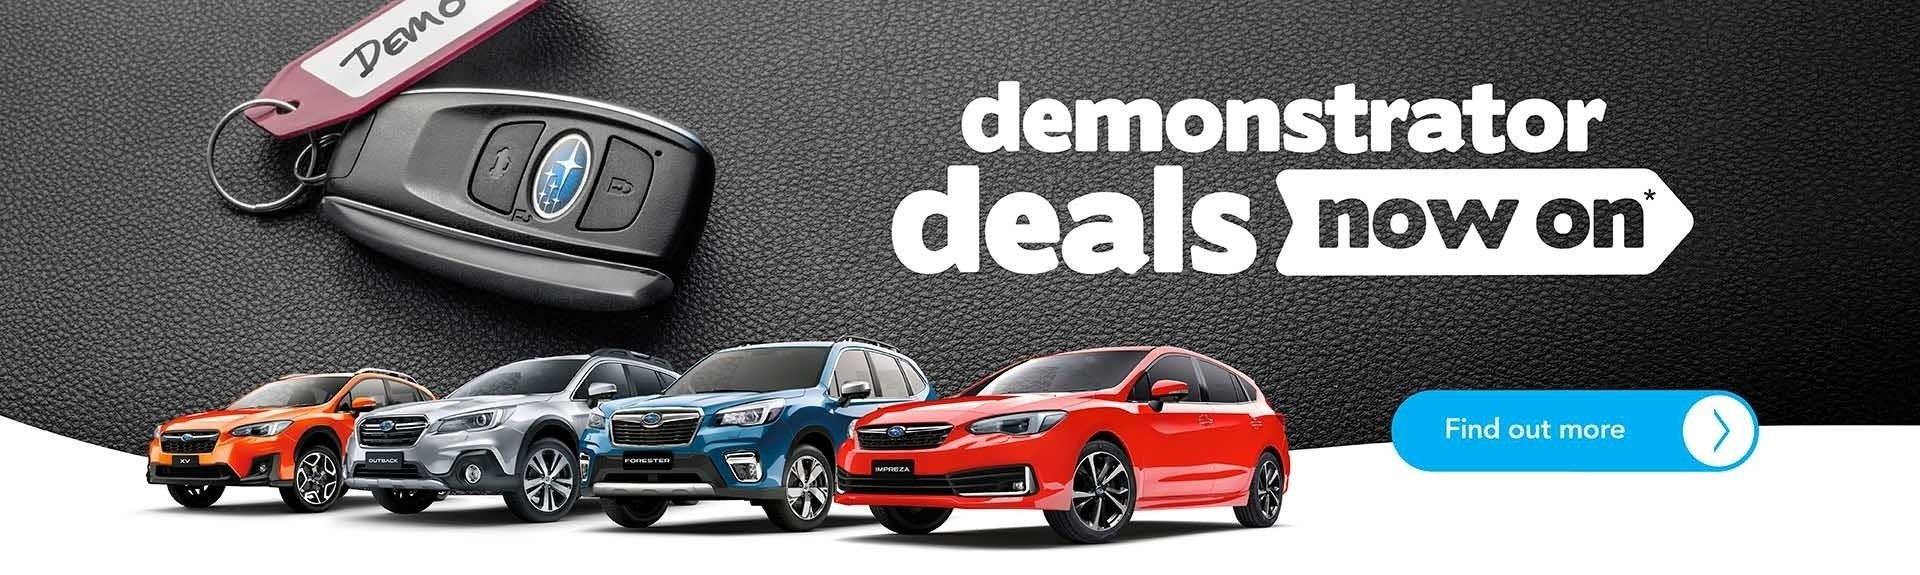 Subaru Penrith - Demonstrator Sale on now